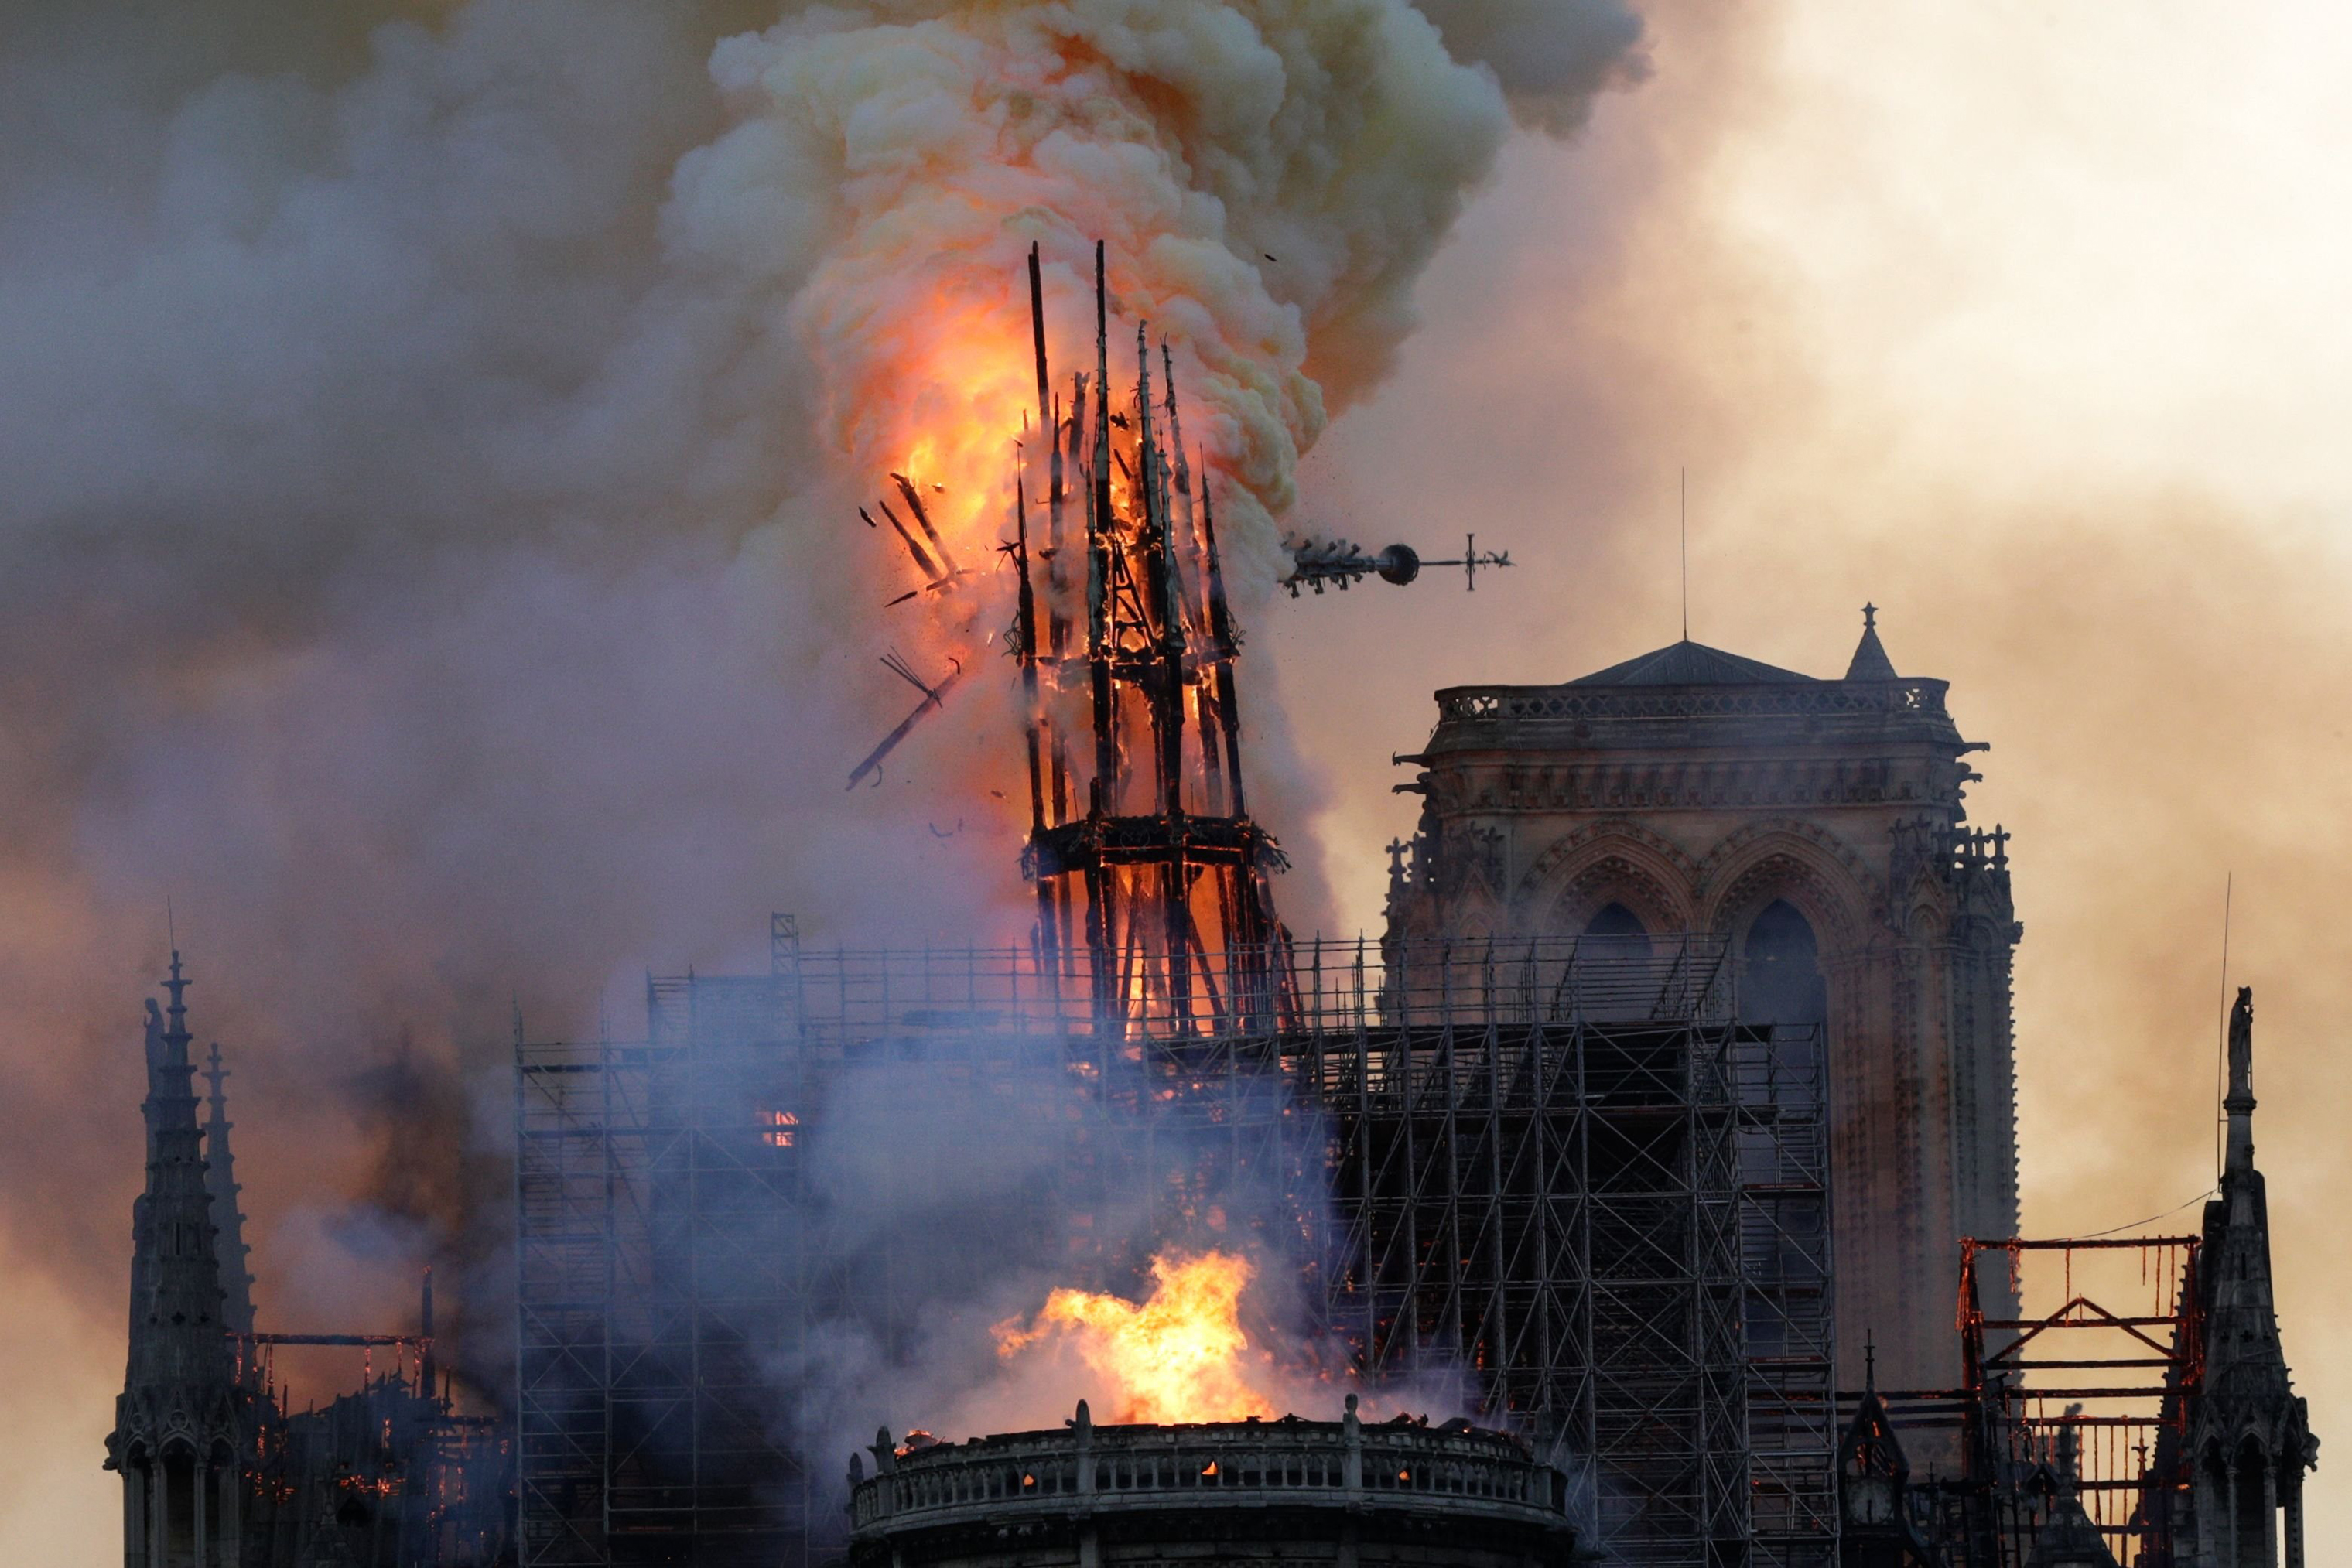 The steeple collapses as smoke and flames engulf the Notre-Dame Cathedral in Paris on April 15, 2019.